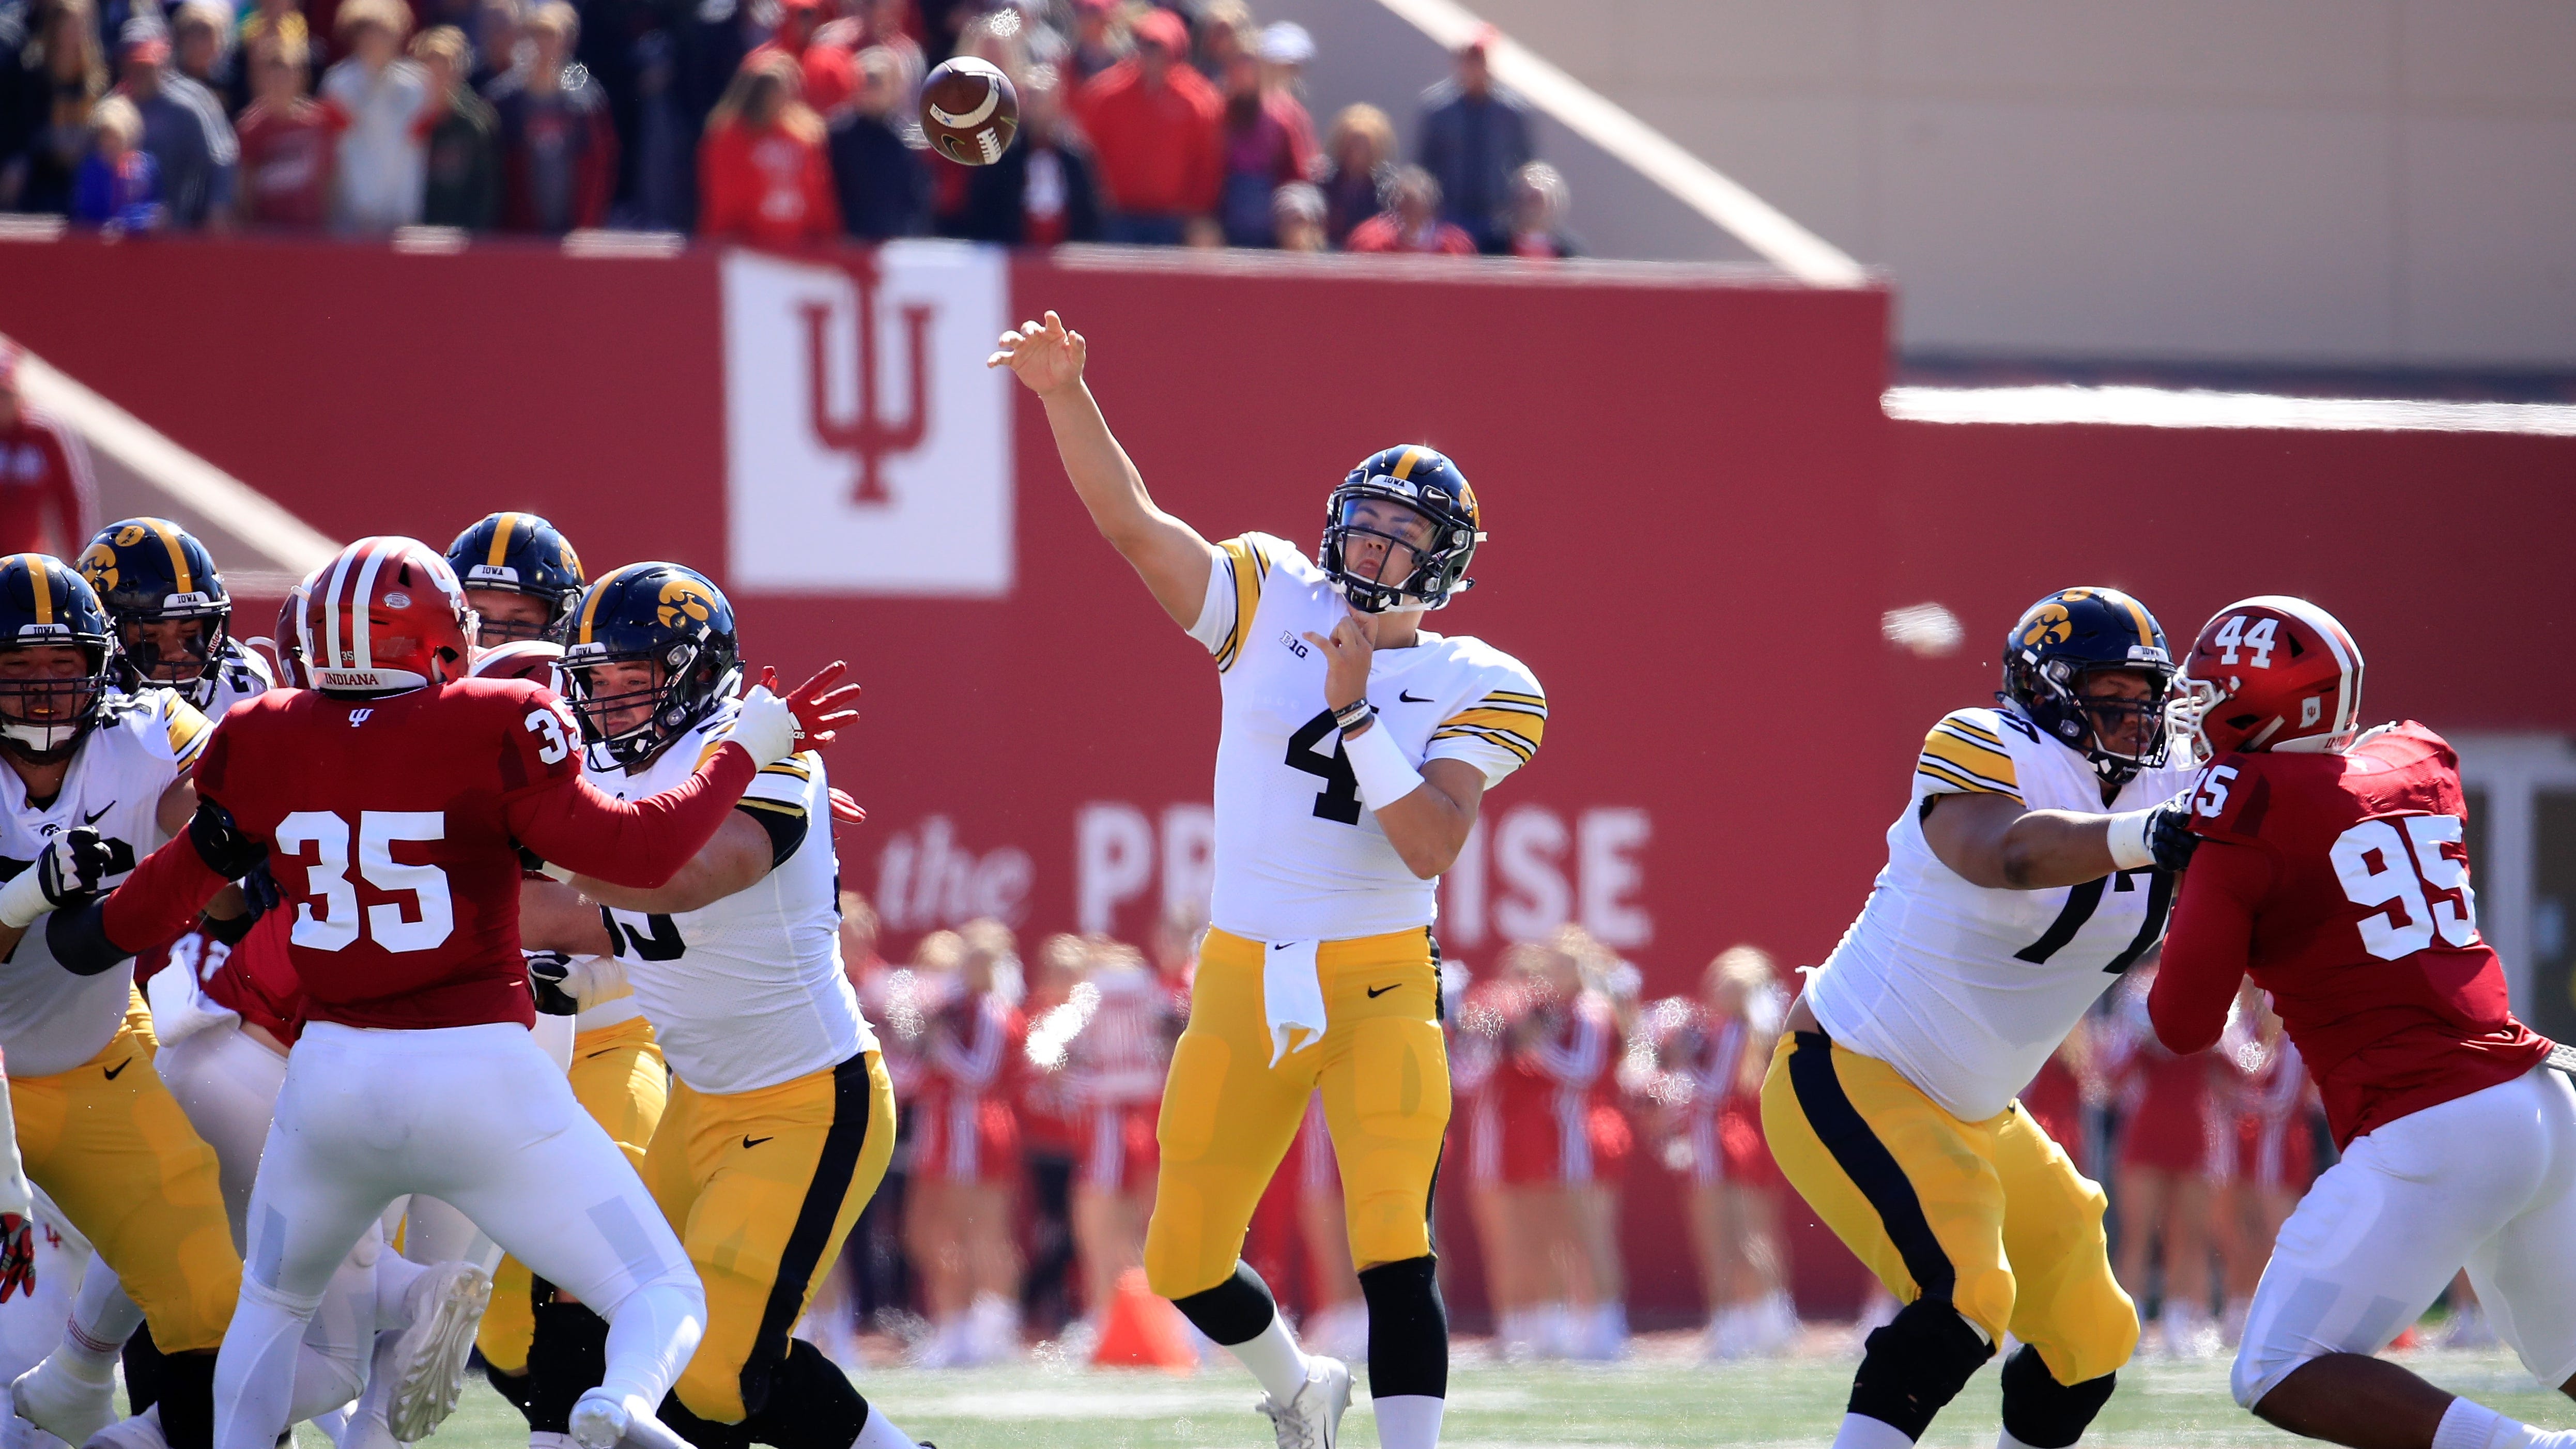 Nate Stanley was more than willing to air it out in Bloomington, Indiana. The Iowa junior quarterback attempted 12 deep shots among his 33 attempts, and finished with 320 yards passing.